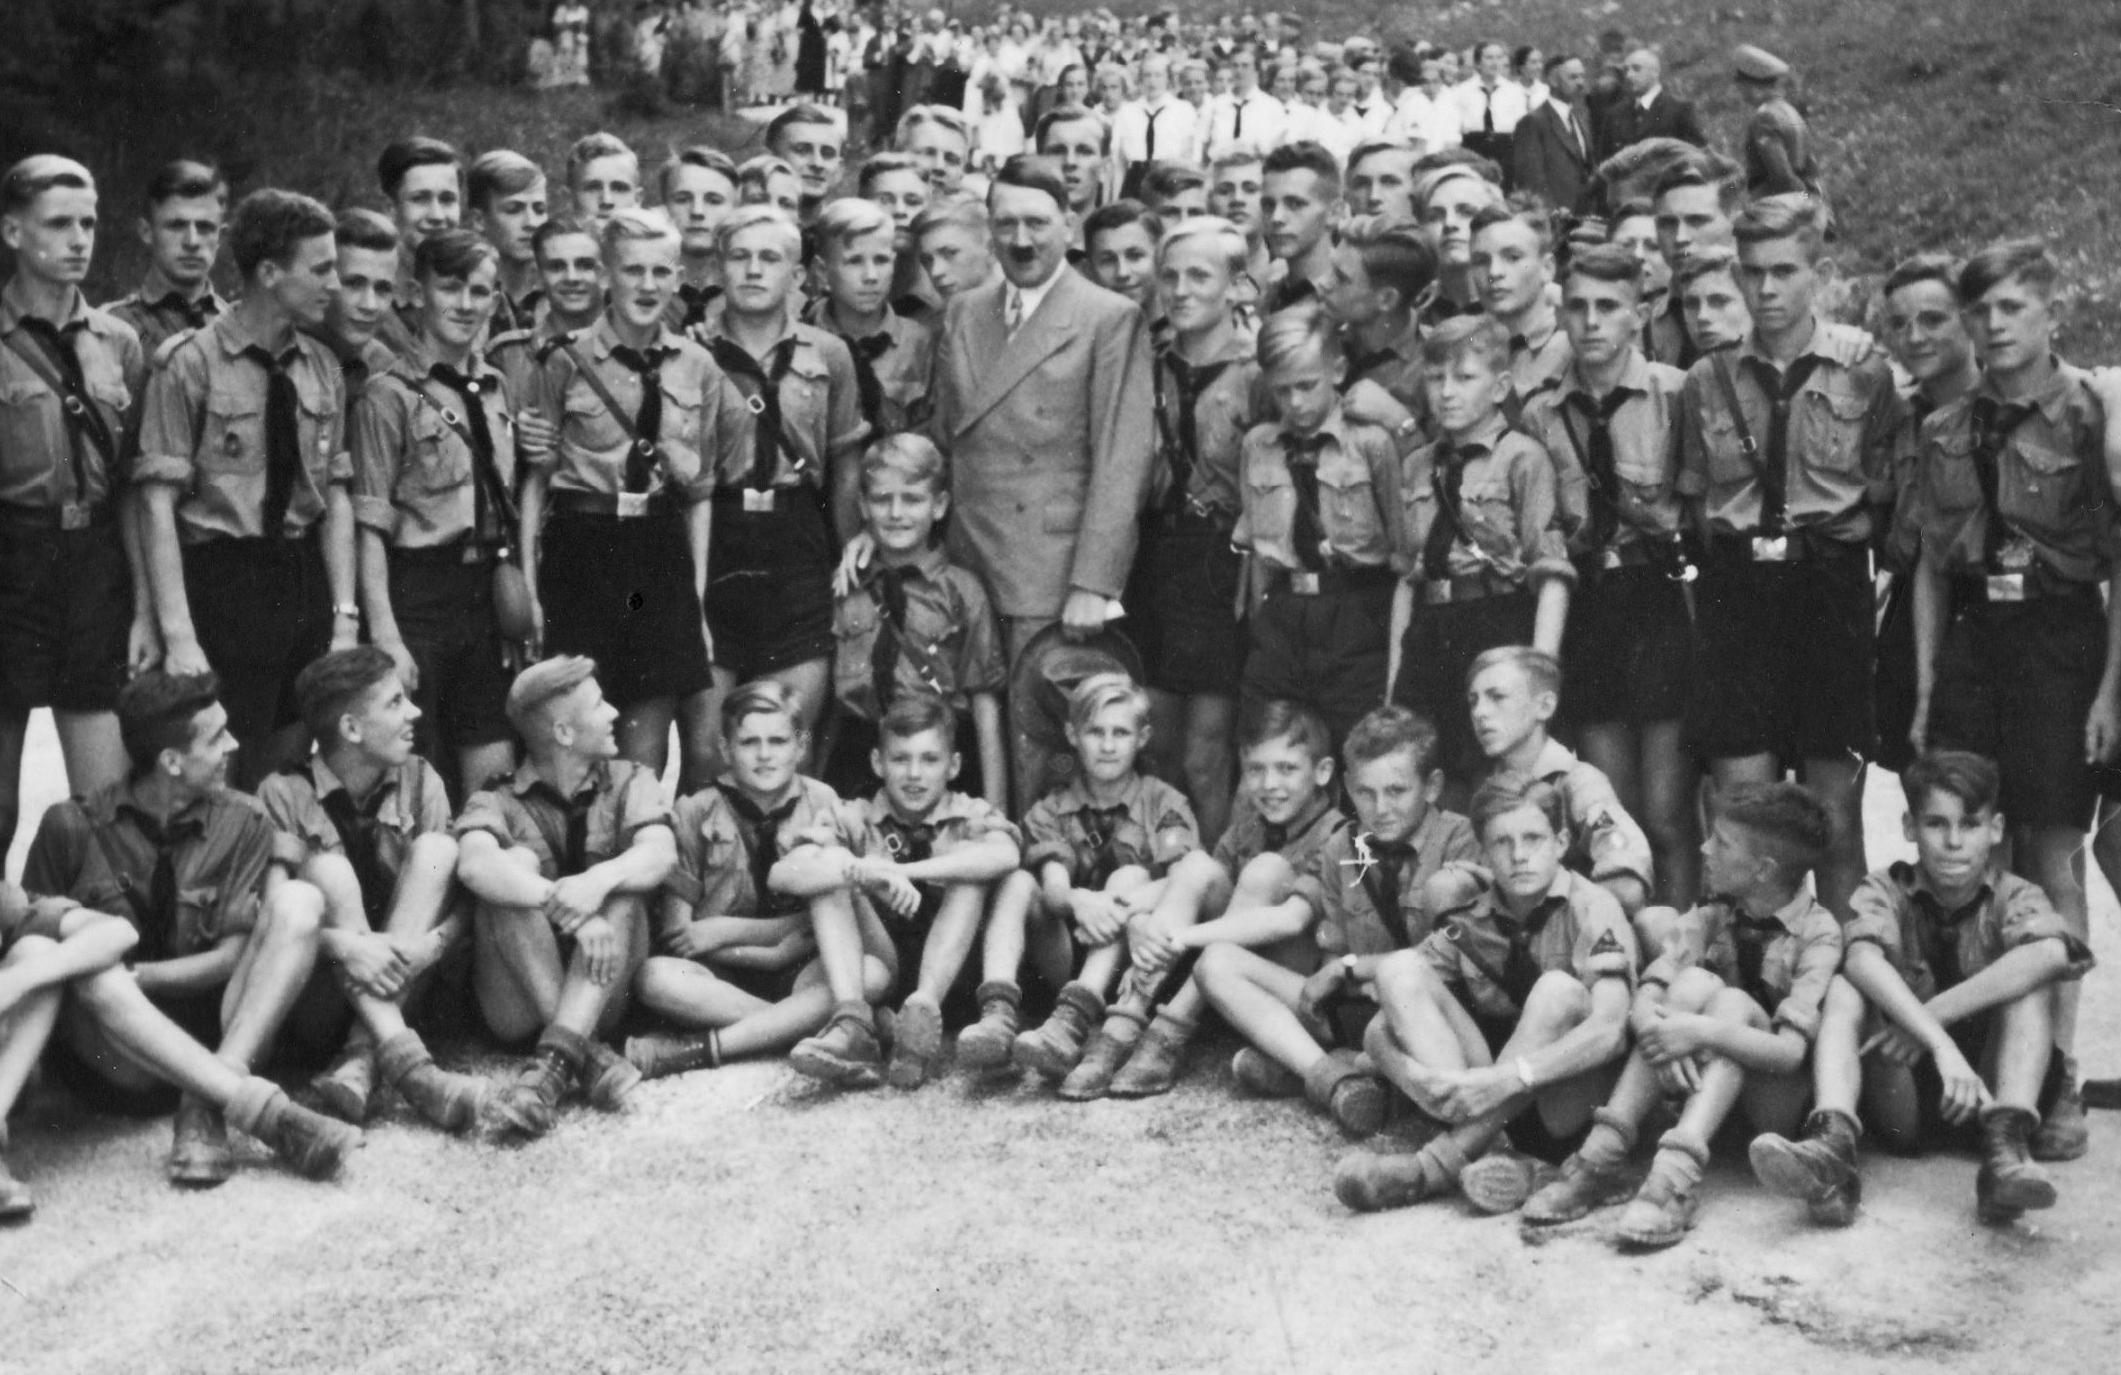 Hitler Youth  By Victoria Perl Infographic  Academic Writing Services For Graduate Students also Online Education Programs  Diwali Essay In English